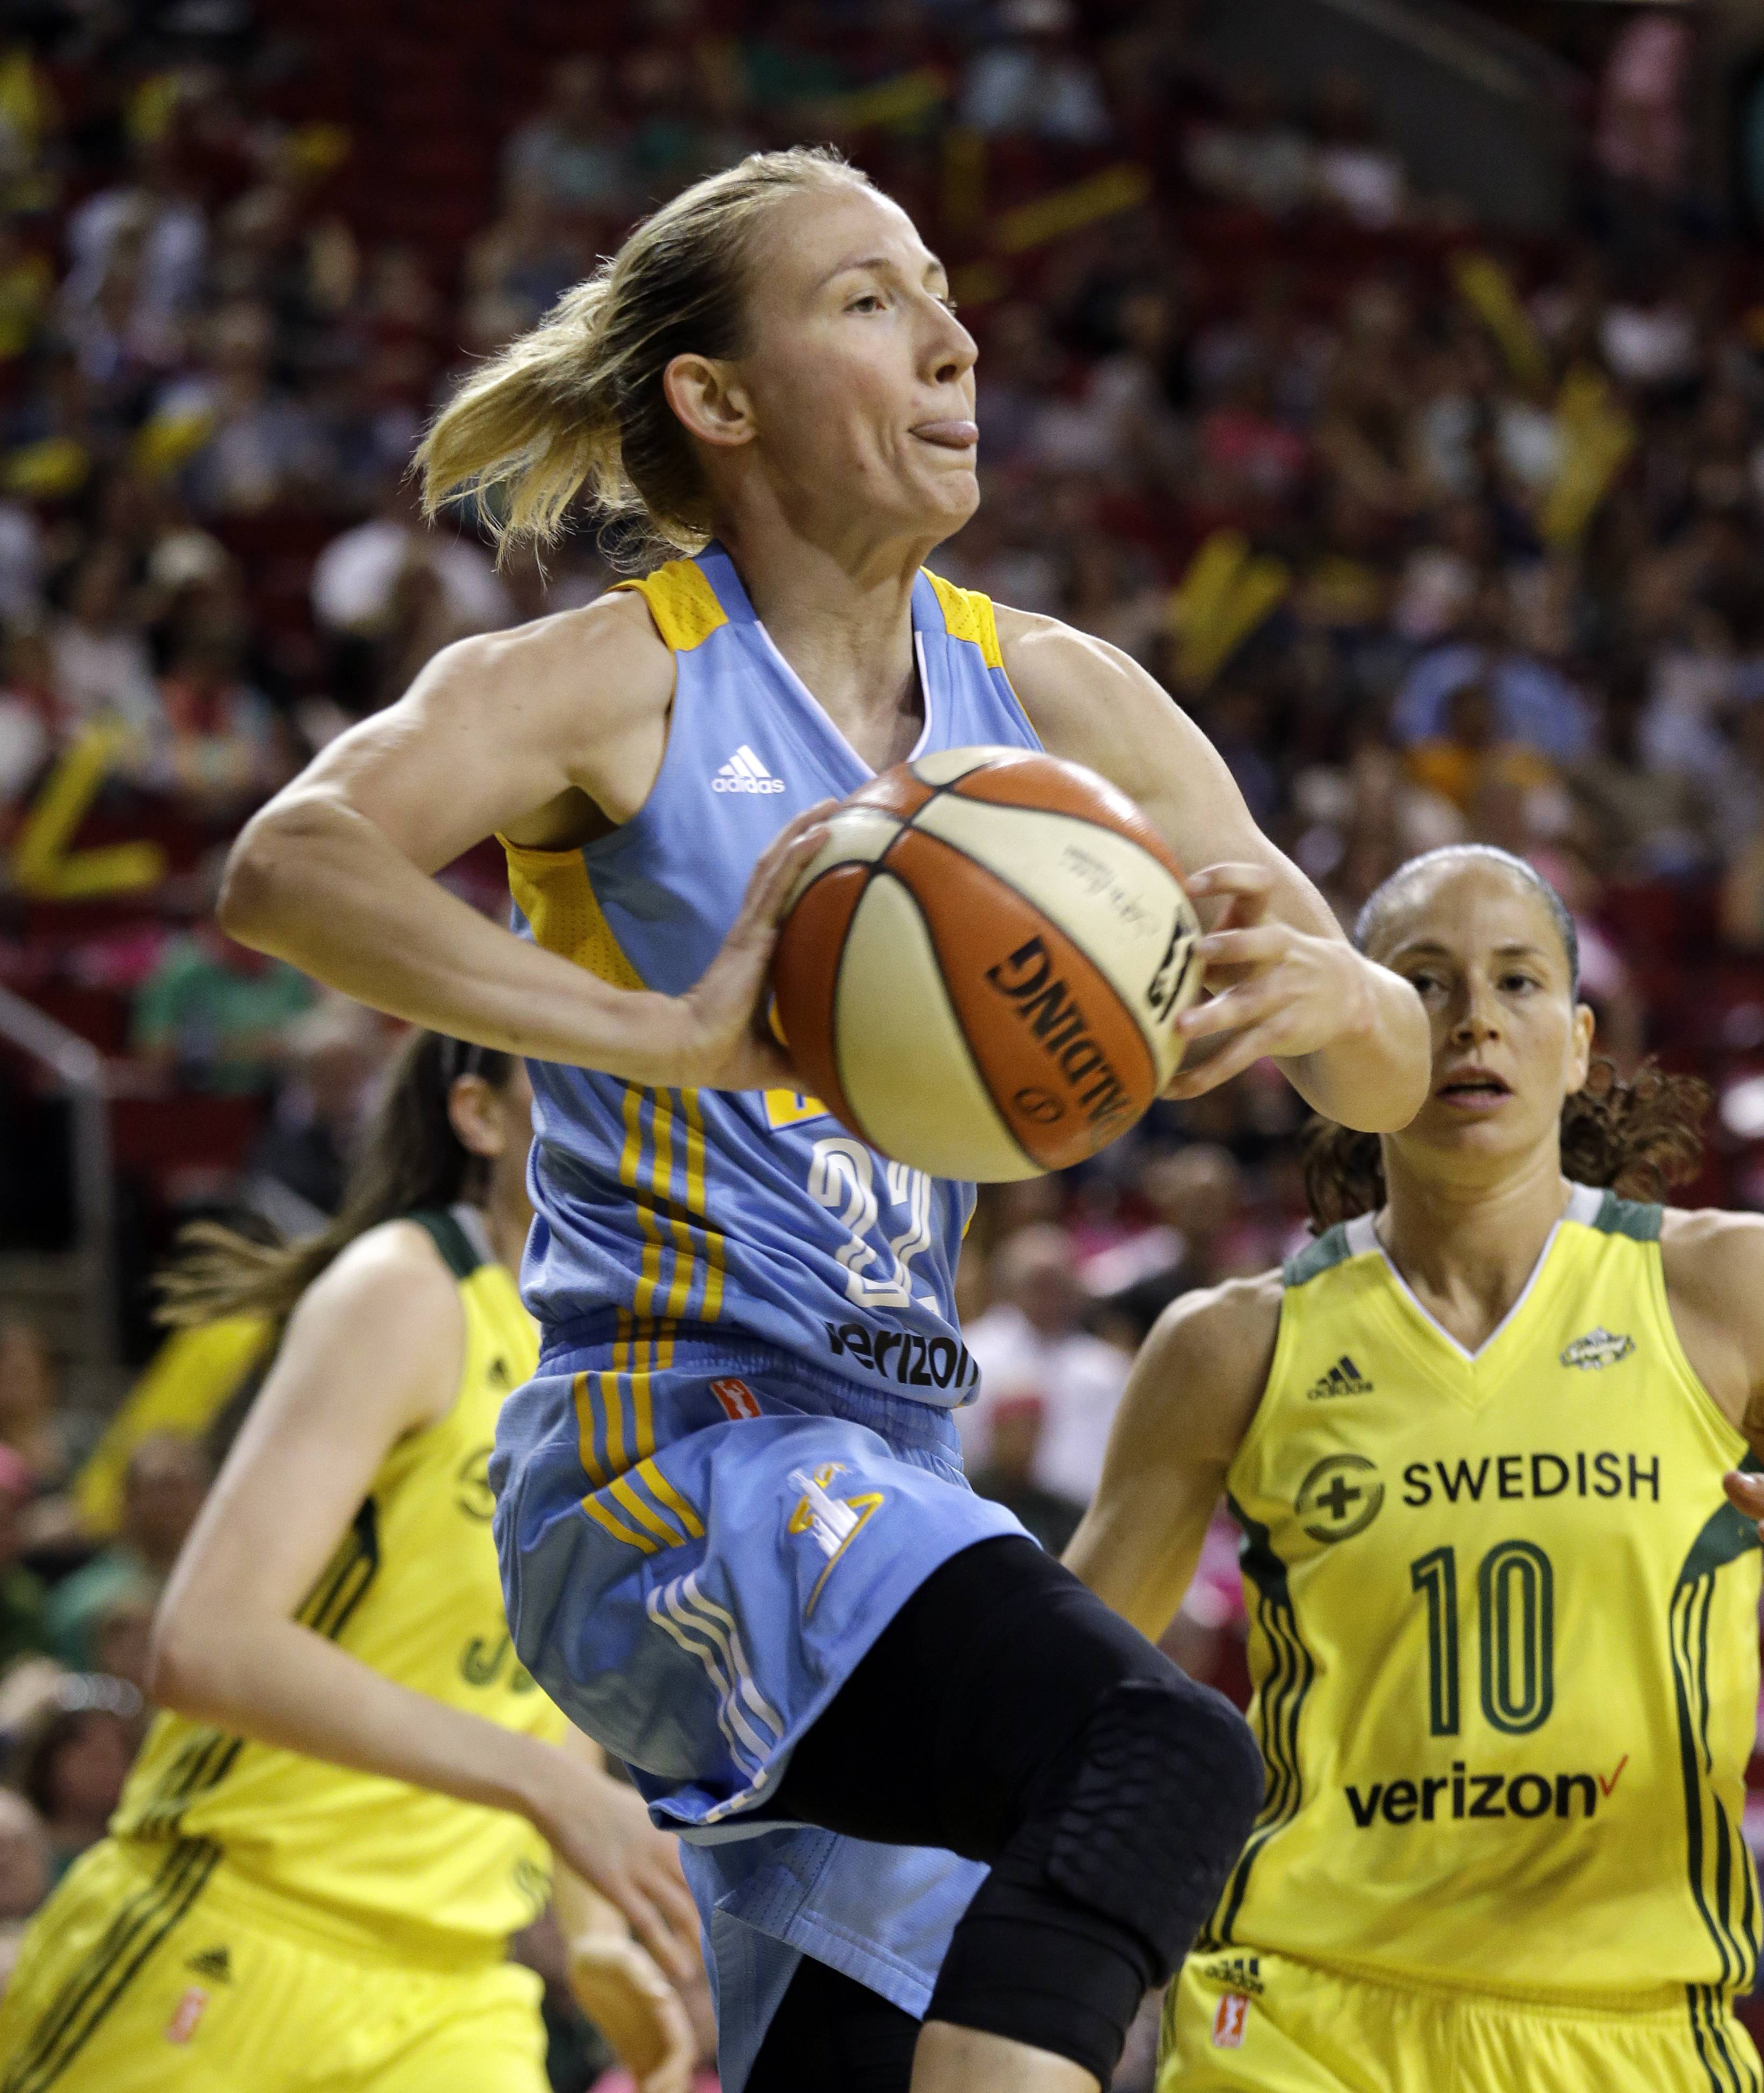 Chicago Sky's Courtney Vandersloot, left, leaps in front of Seattle Storm's Sue Bird to pass under the basket in the first half of a WNBA basketball game Tuesday, July 18, 2017, in Seattle.